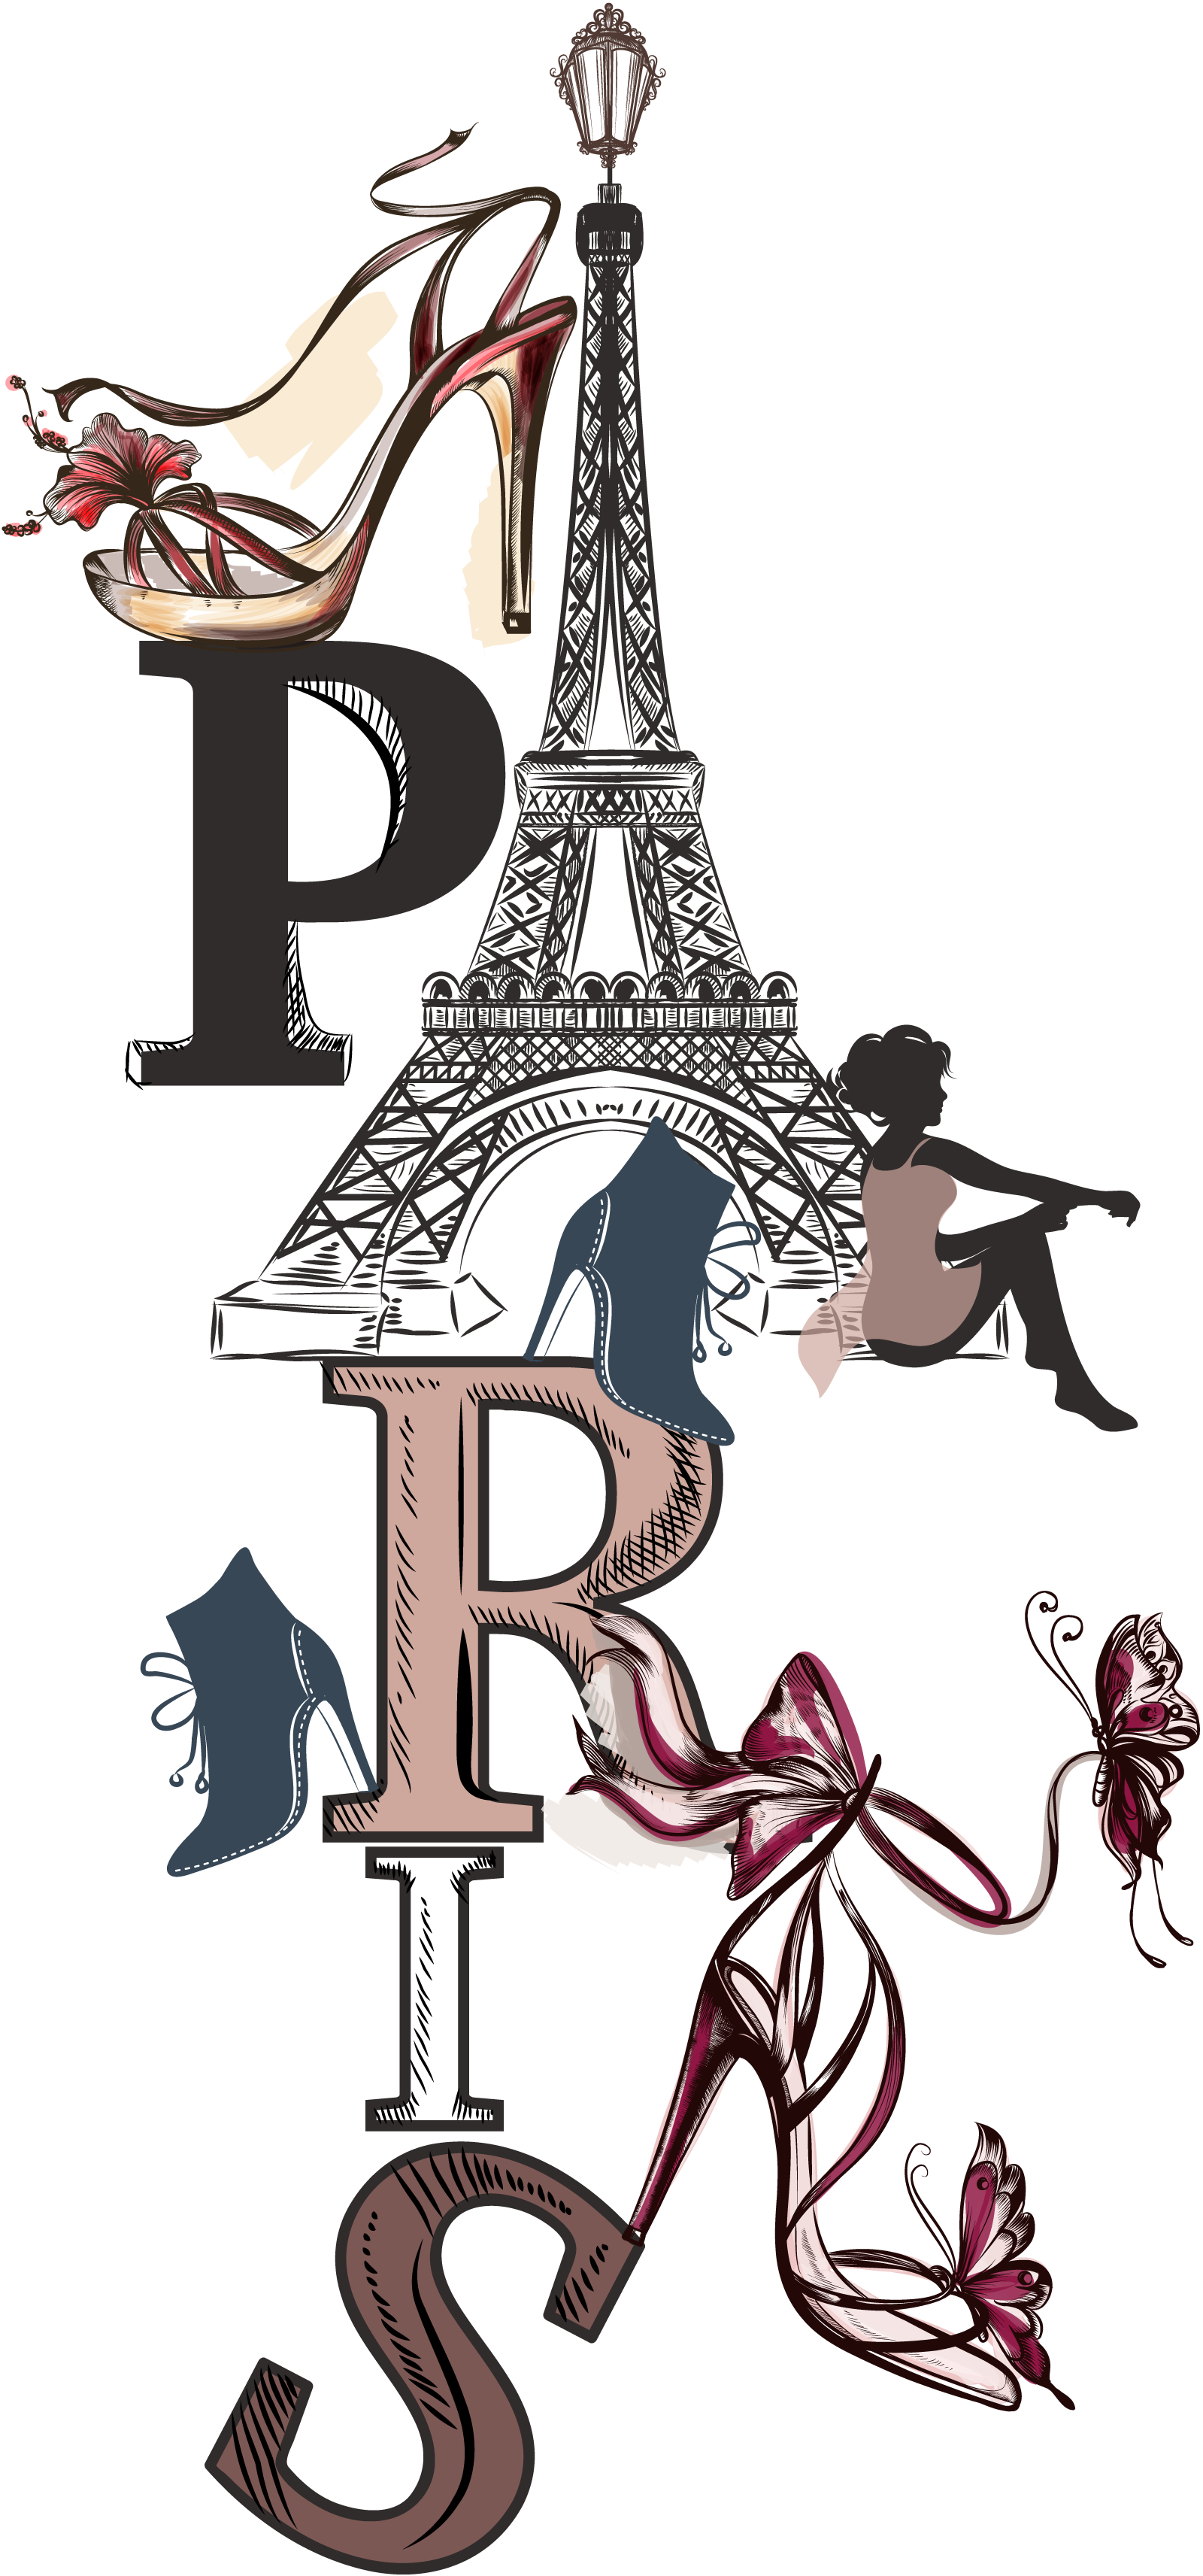 French clipart themed paris, French themed paris Transparent.